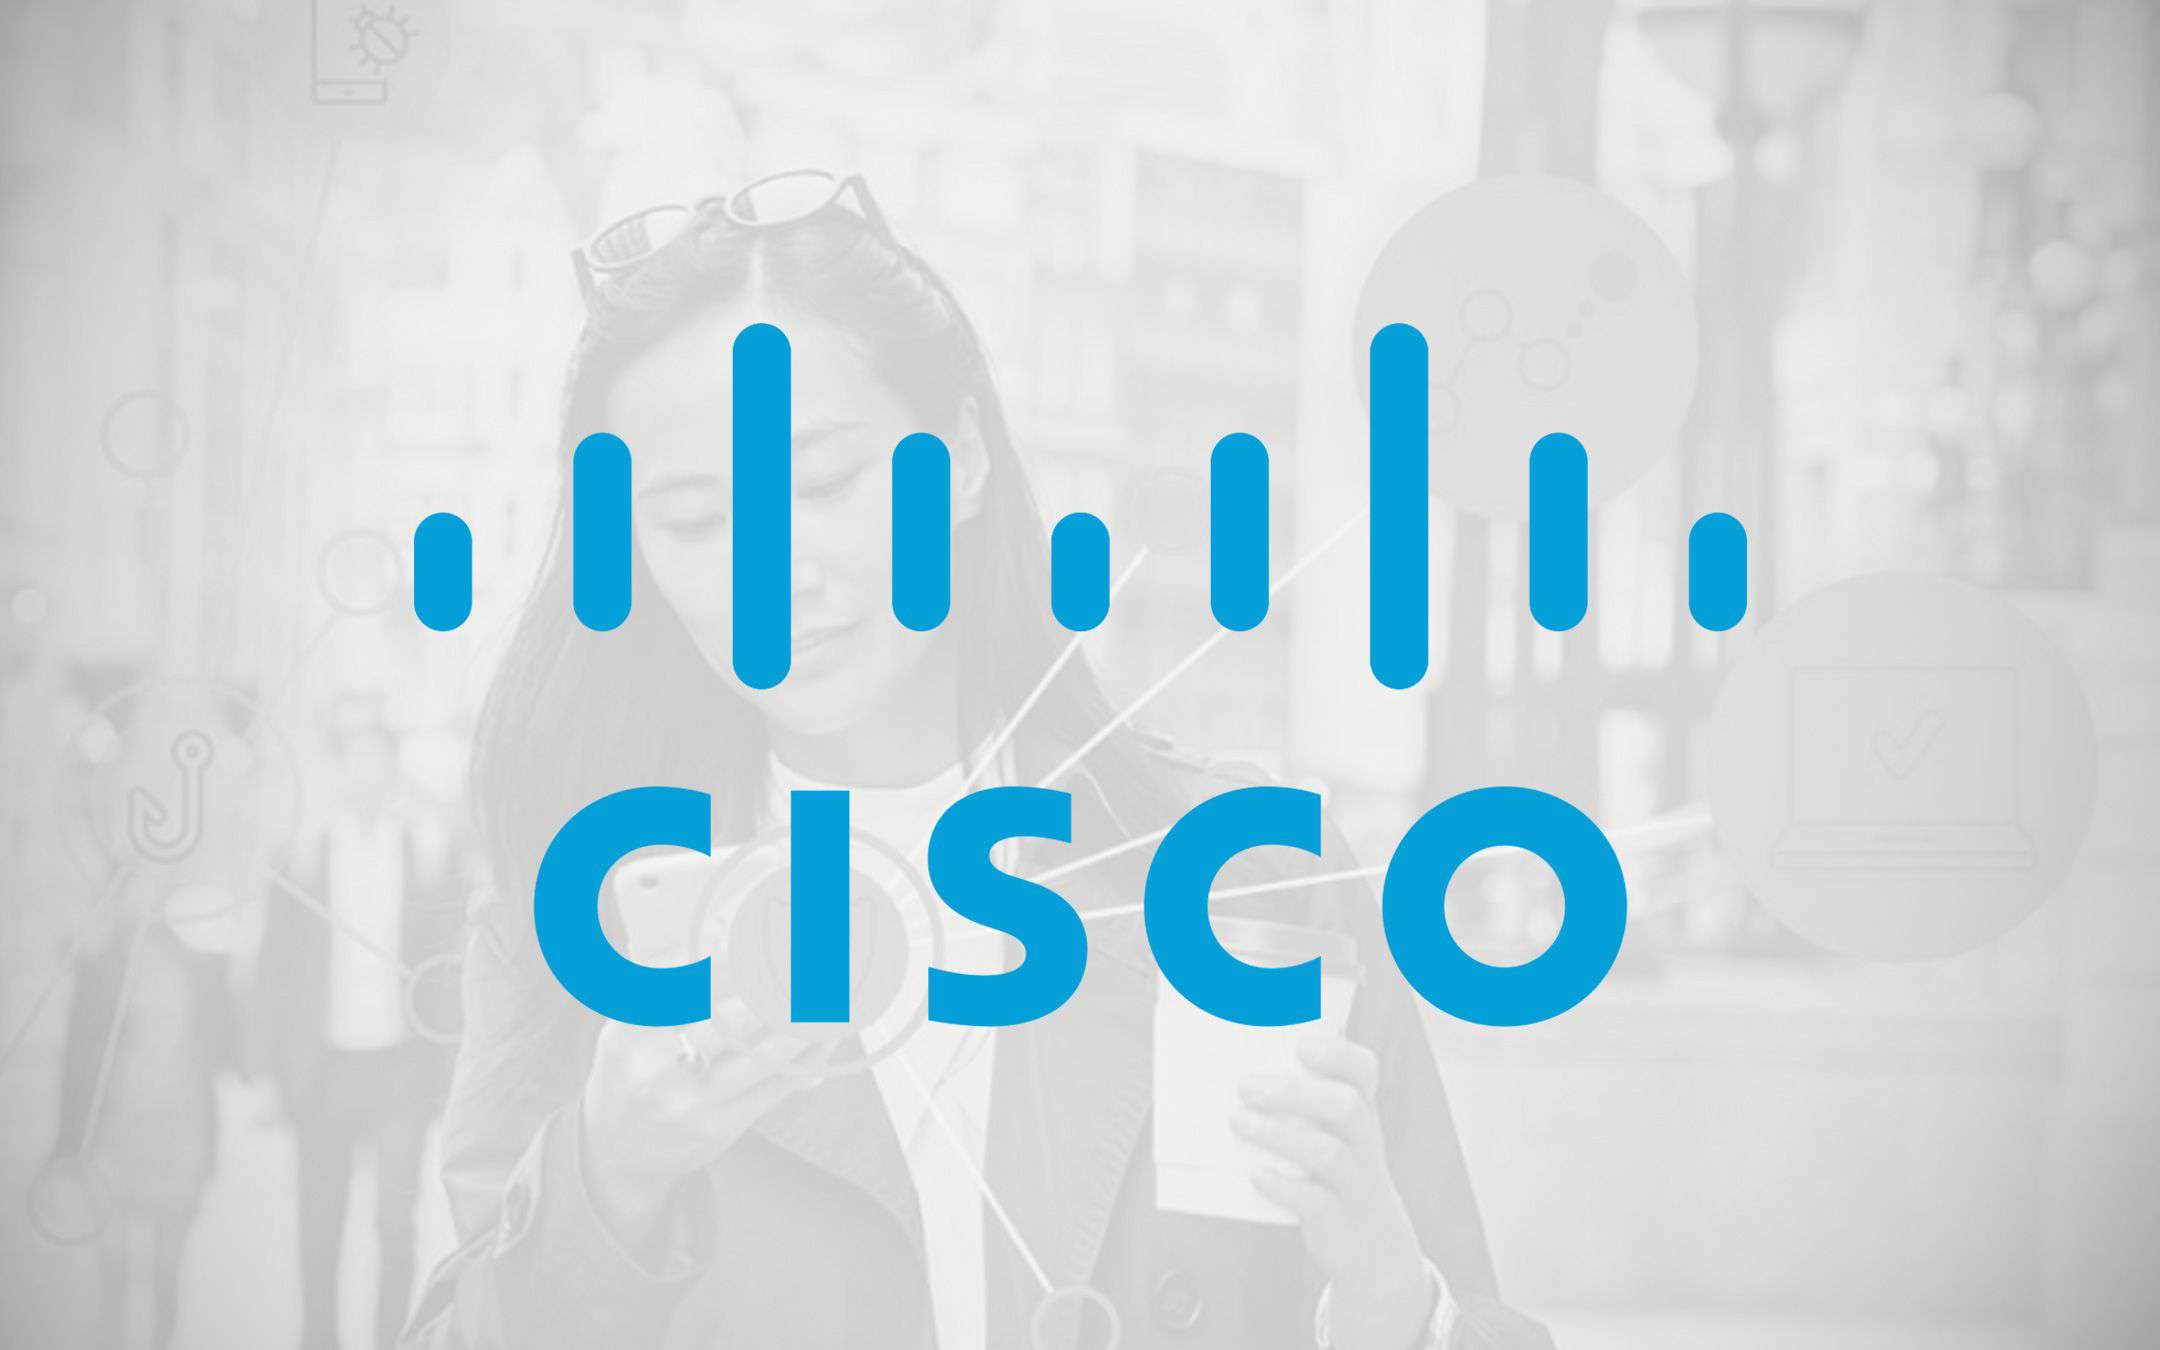 Cisco, 500 cybersecurity scholarships